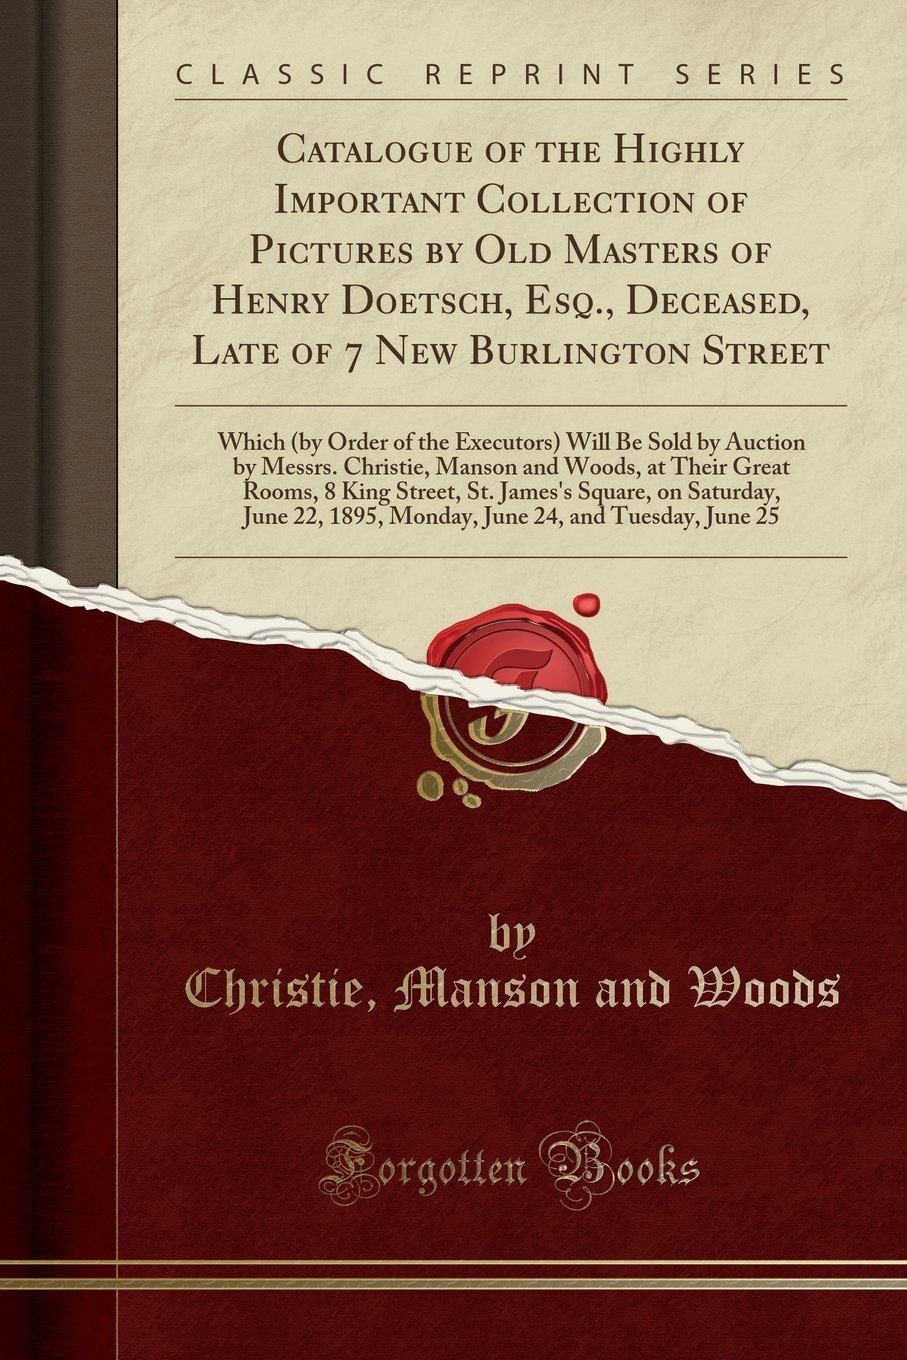 Catalogue of the Highly Important Collection of Pictures by Old Masters of Henry Doetsch, Esq., Deceased, Late of 7 New Burlington Street: Which (by ... Manson and Woods, at Their Great Room pdf